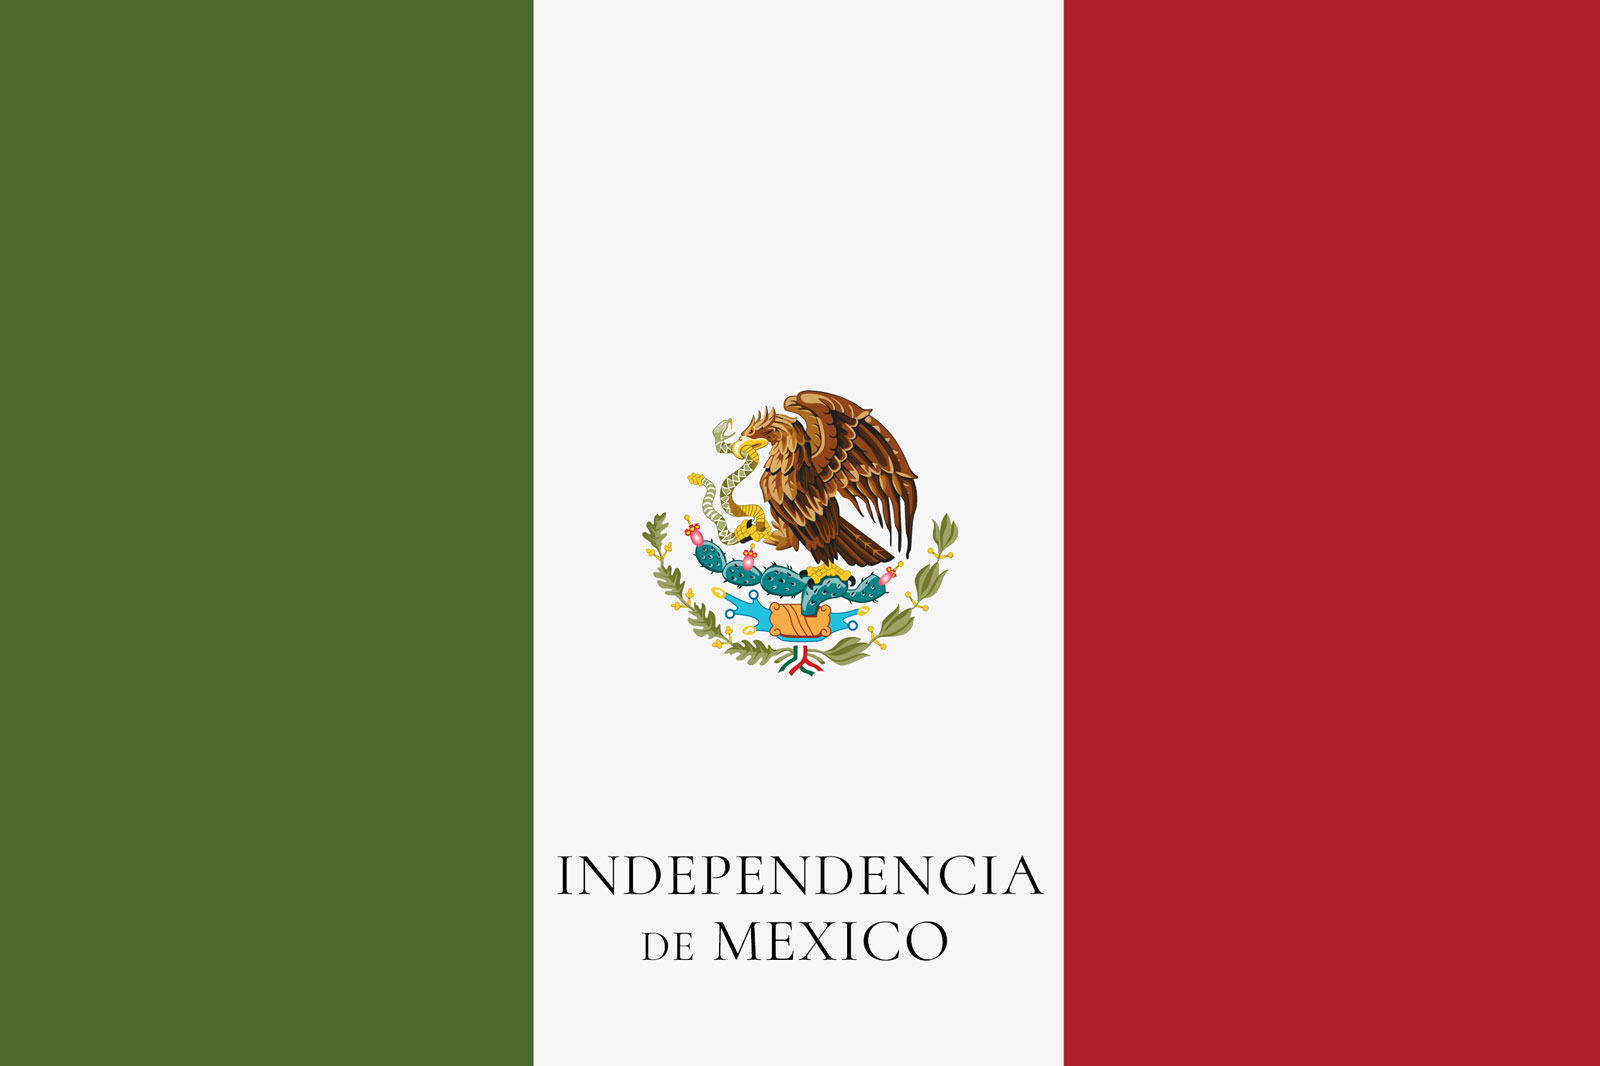 Magazine_by_Maya_Luxe_Lifestyle_Riviera_Maya_Events_What_to_do_Playa_del_Carmen_Mexican_Independance_Day_Cover-2.jpg